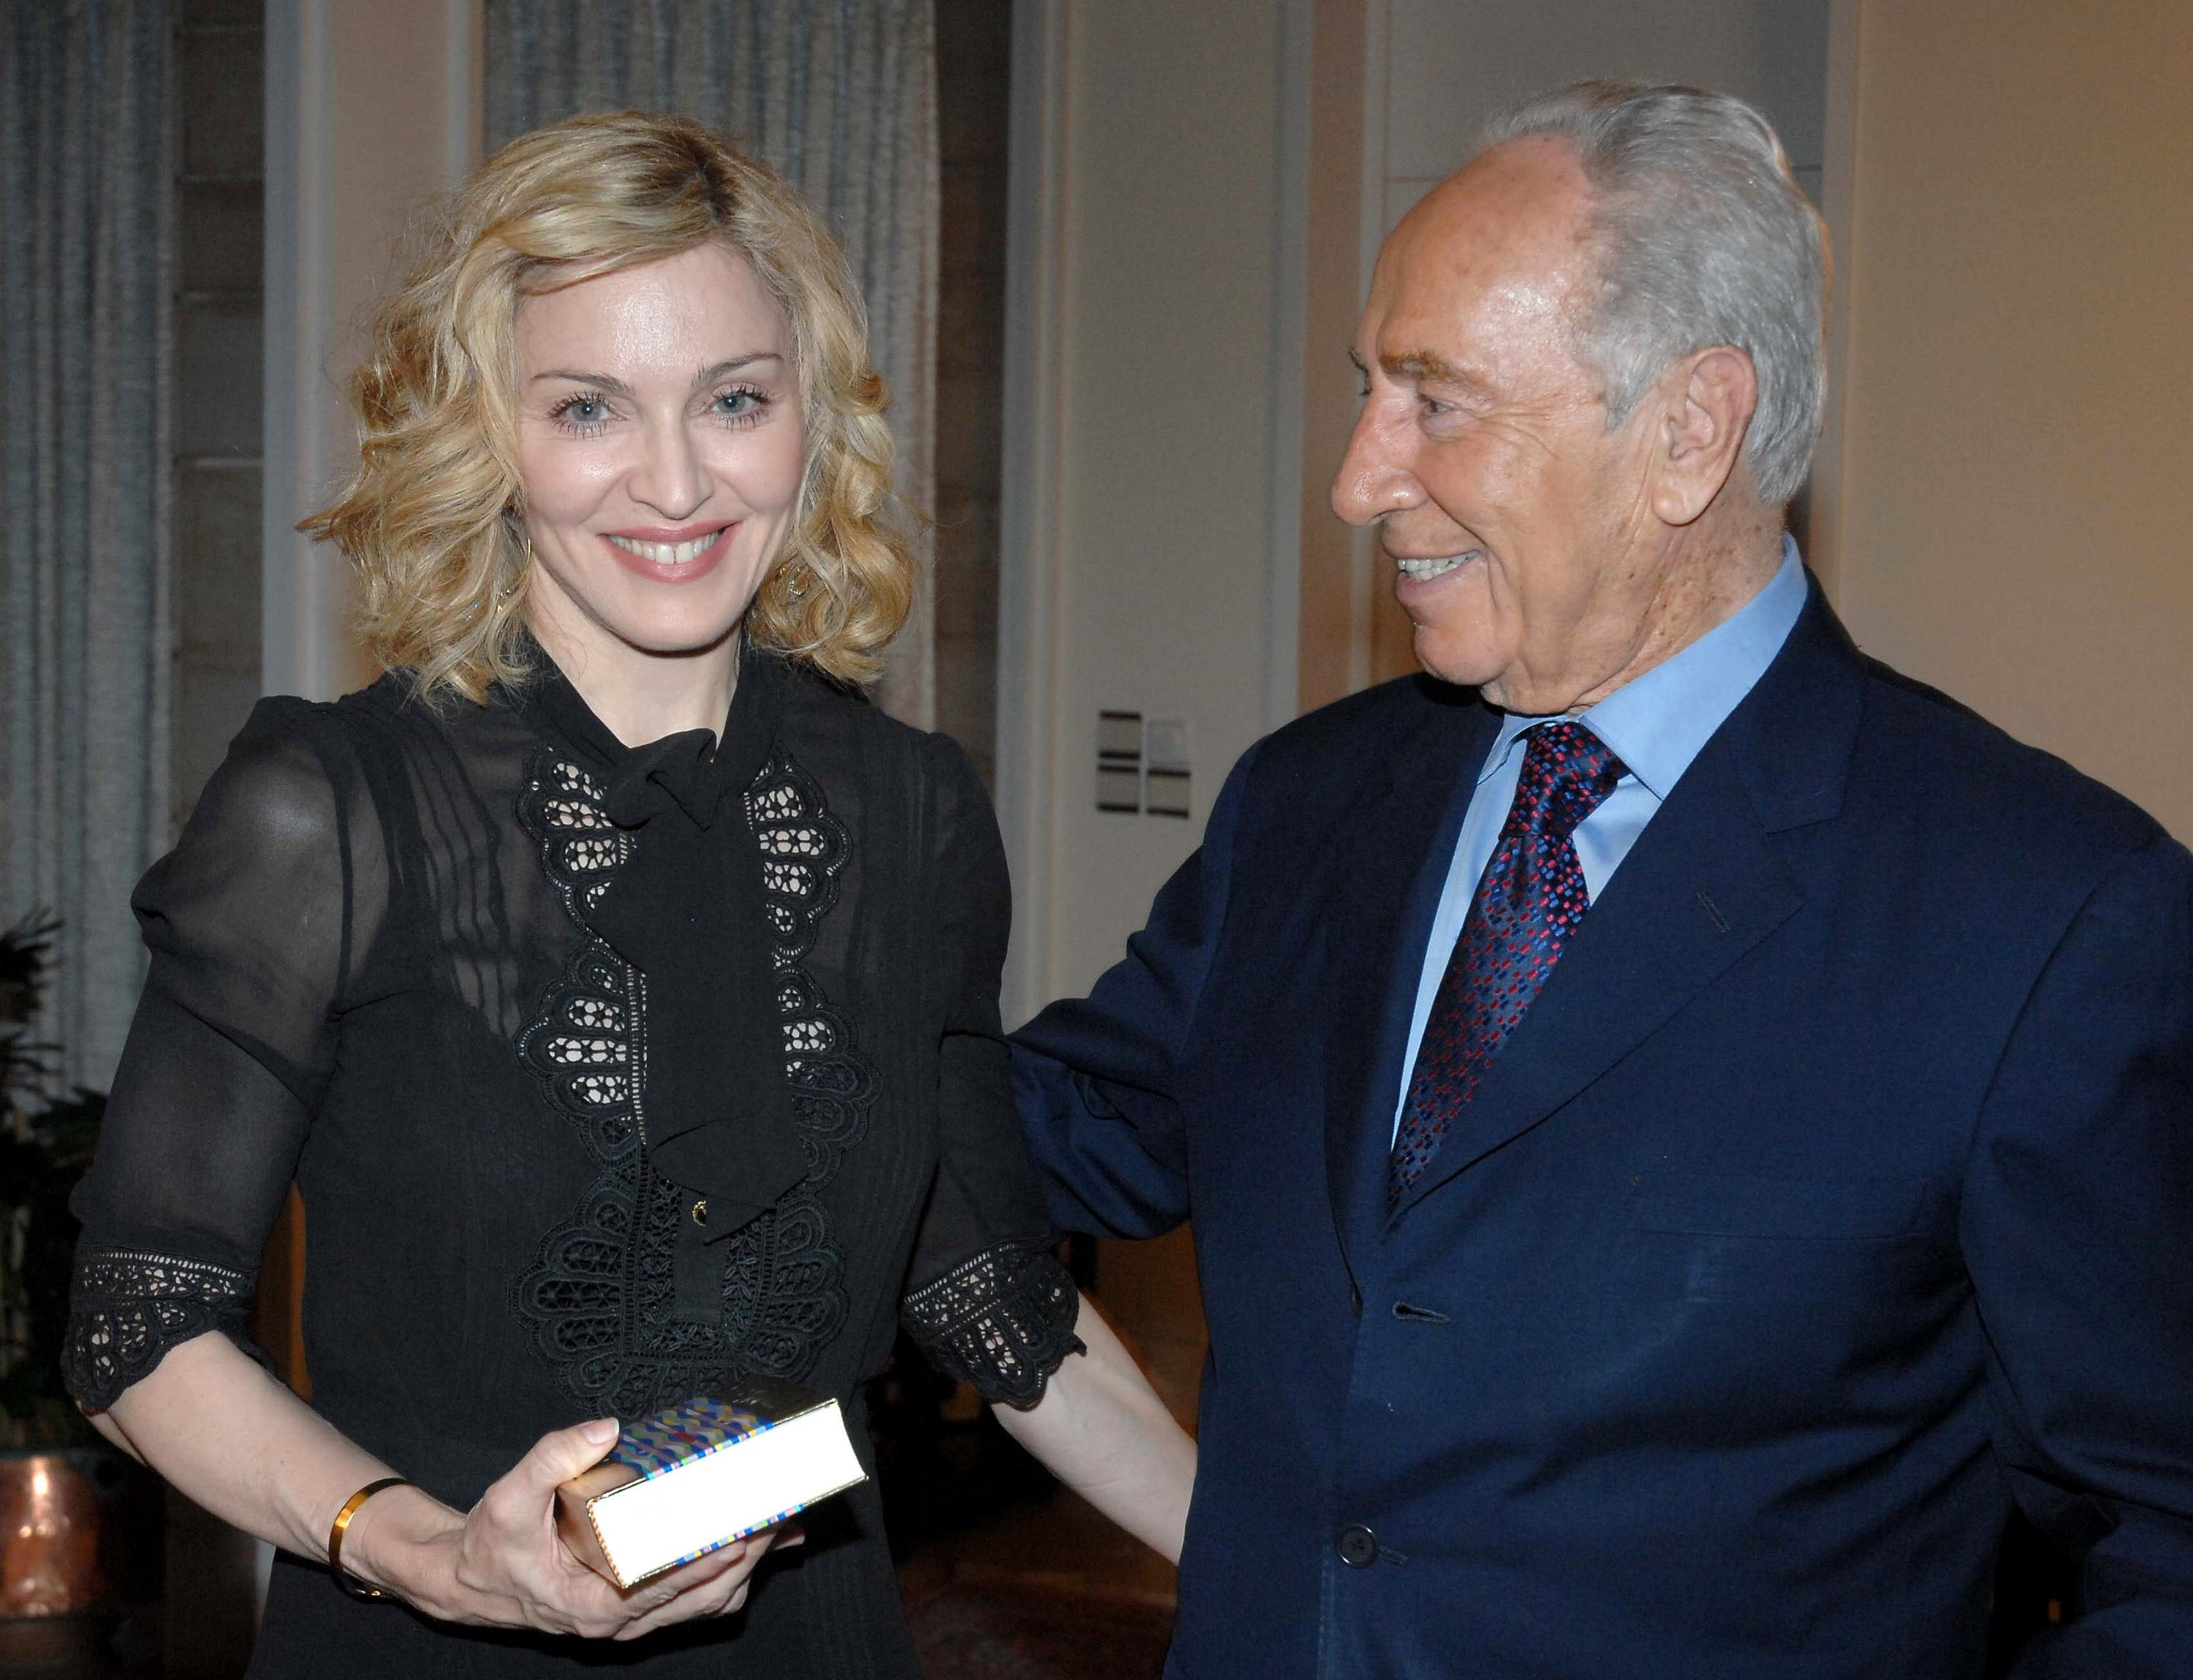 Madonna meets Shimon Peres: Hollywood stars have been found flirting with religion in recent times as Madonna famously dabbled in Kabbalah, a Jewish mystical doctrine.